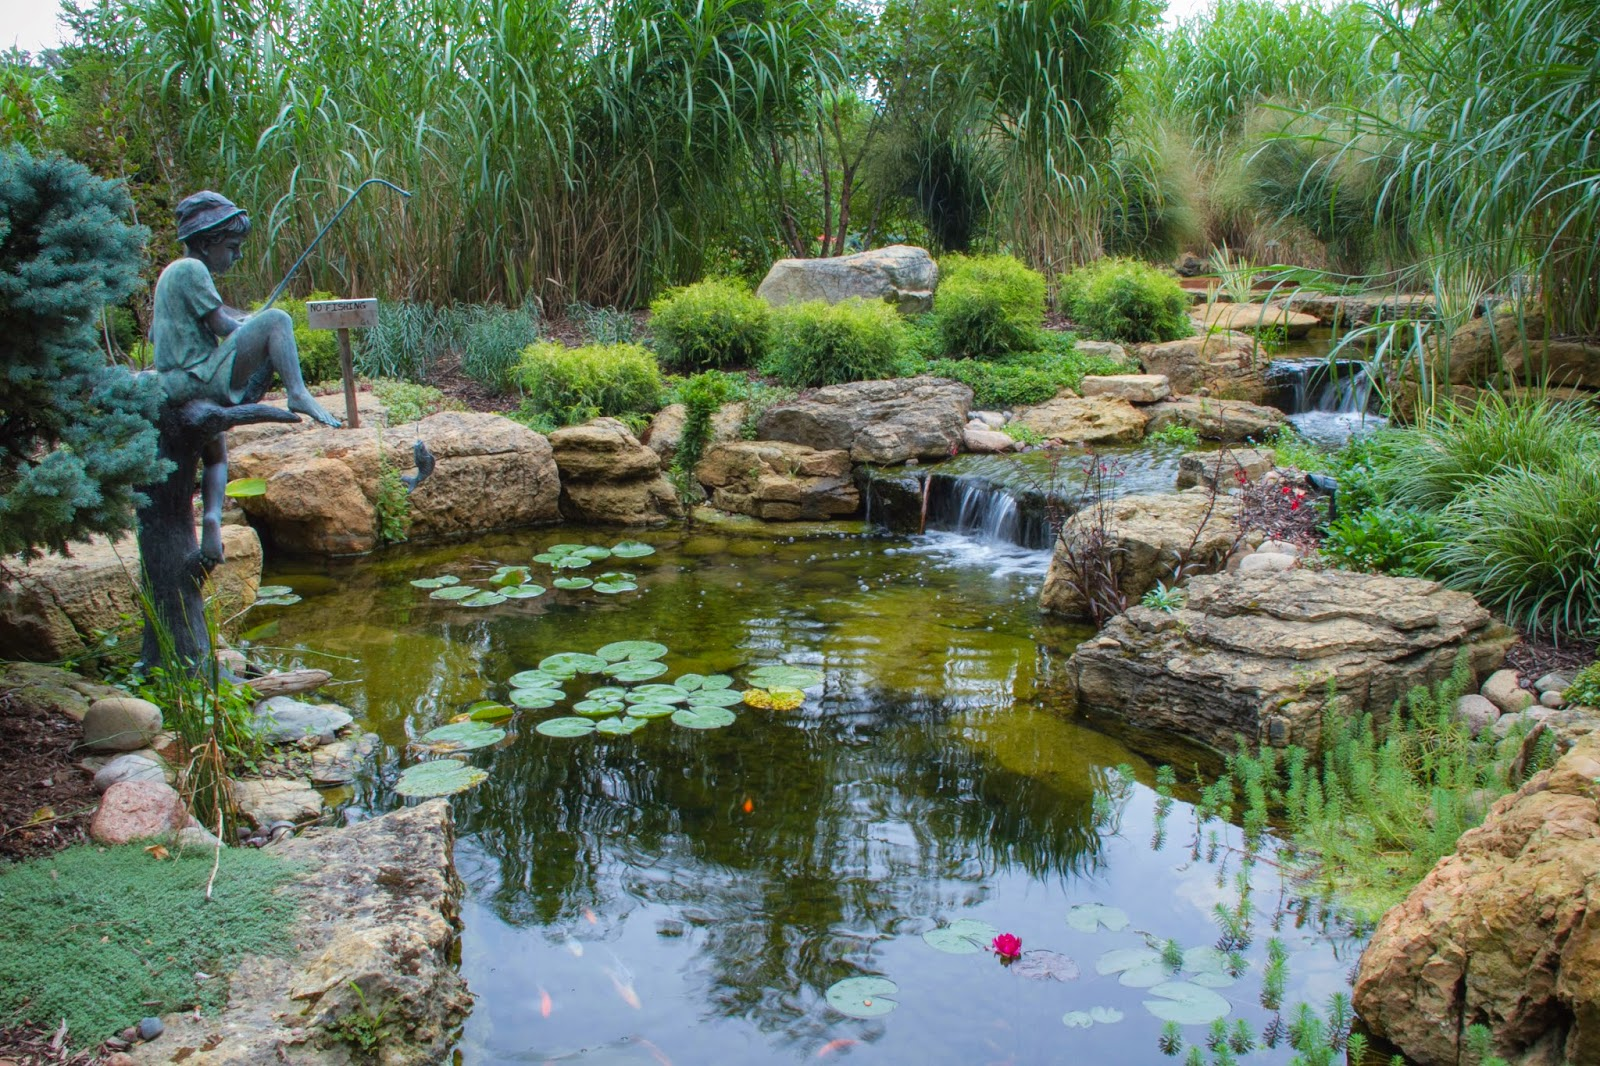 How a Chicago Suburbanite Transformed their Backyard with Water